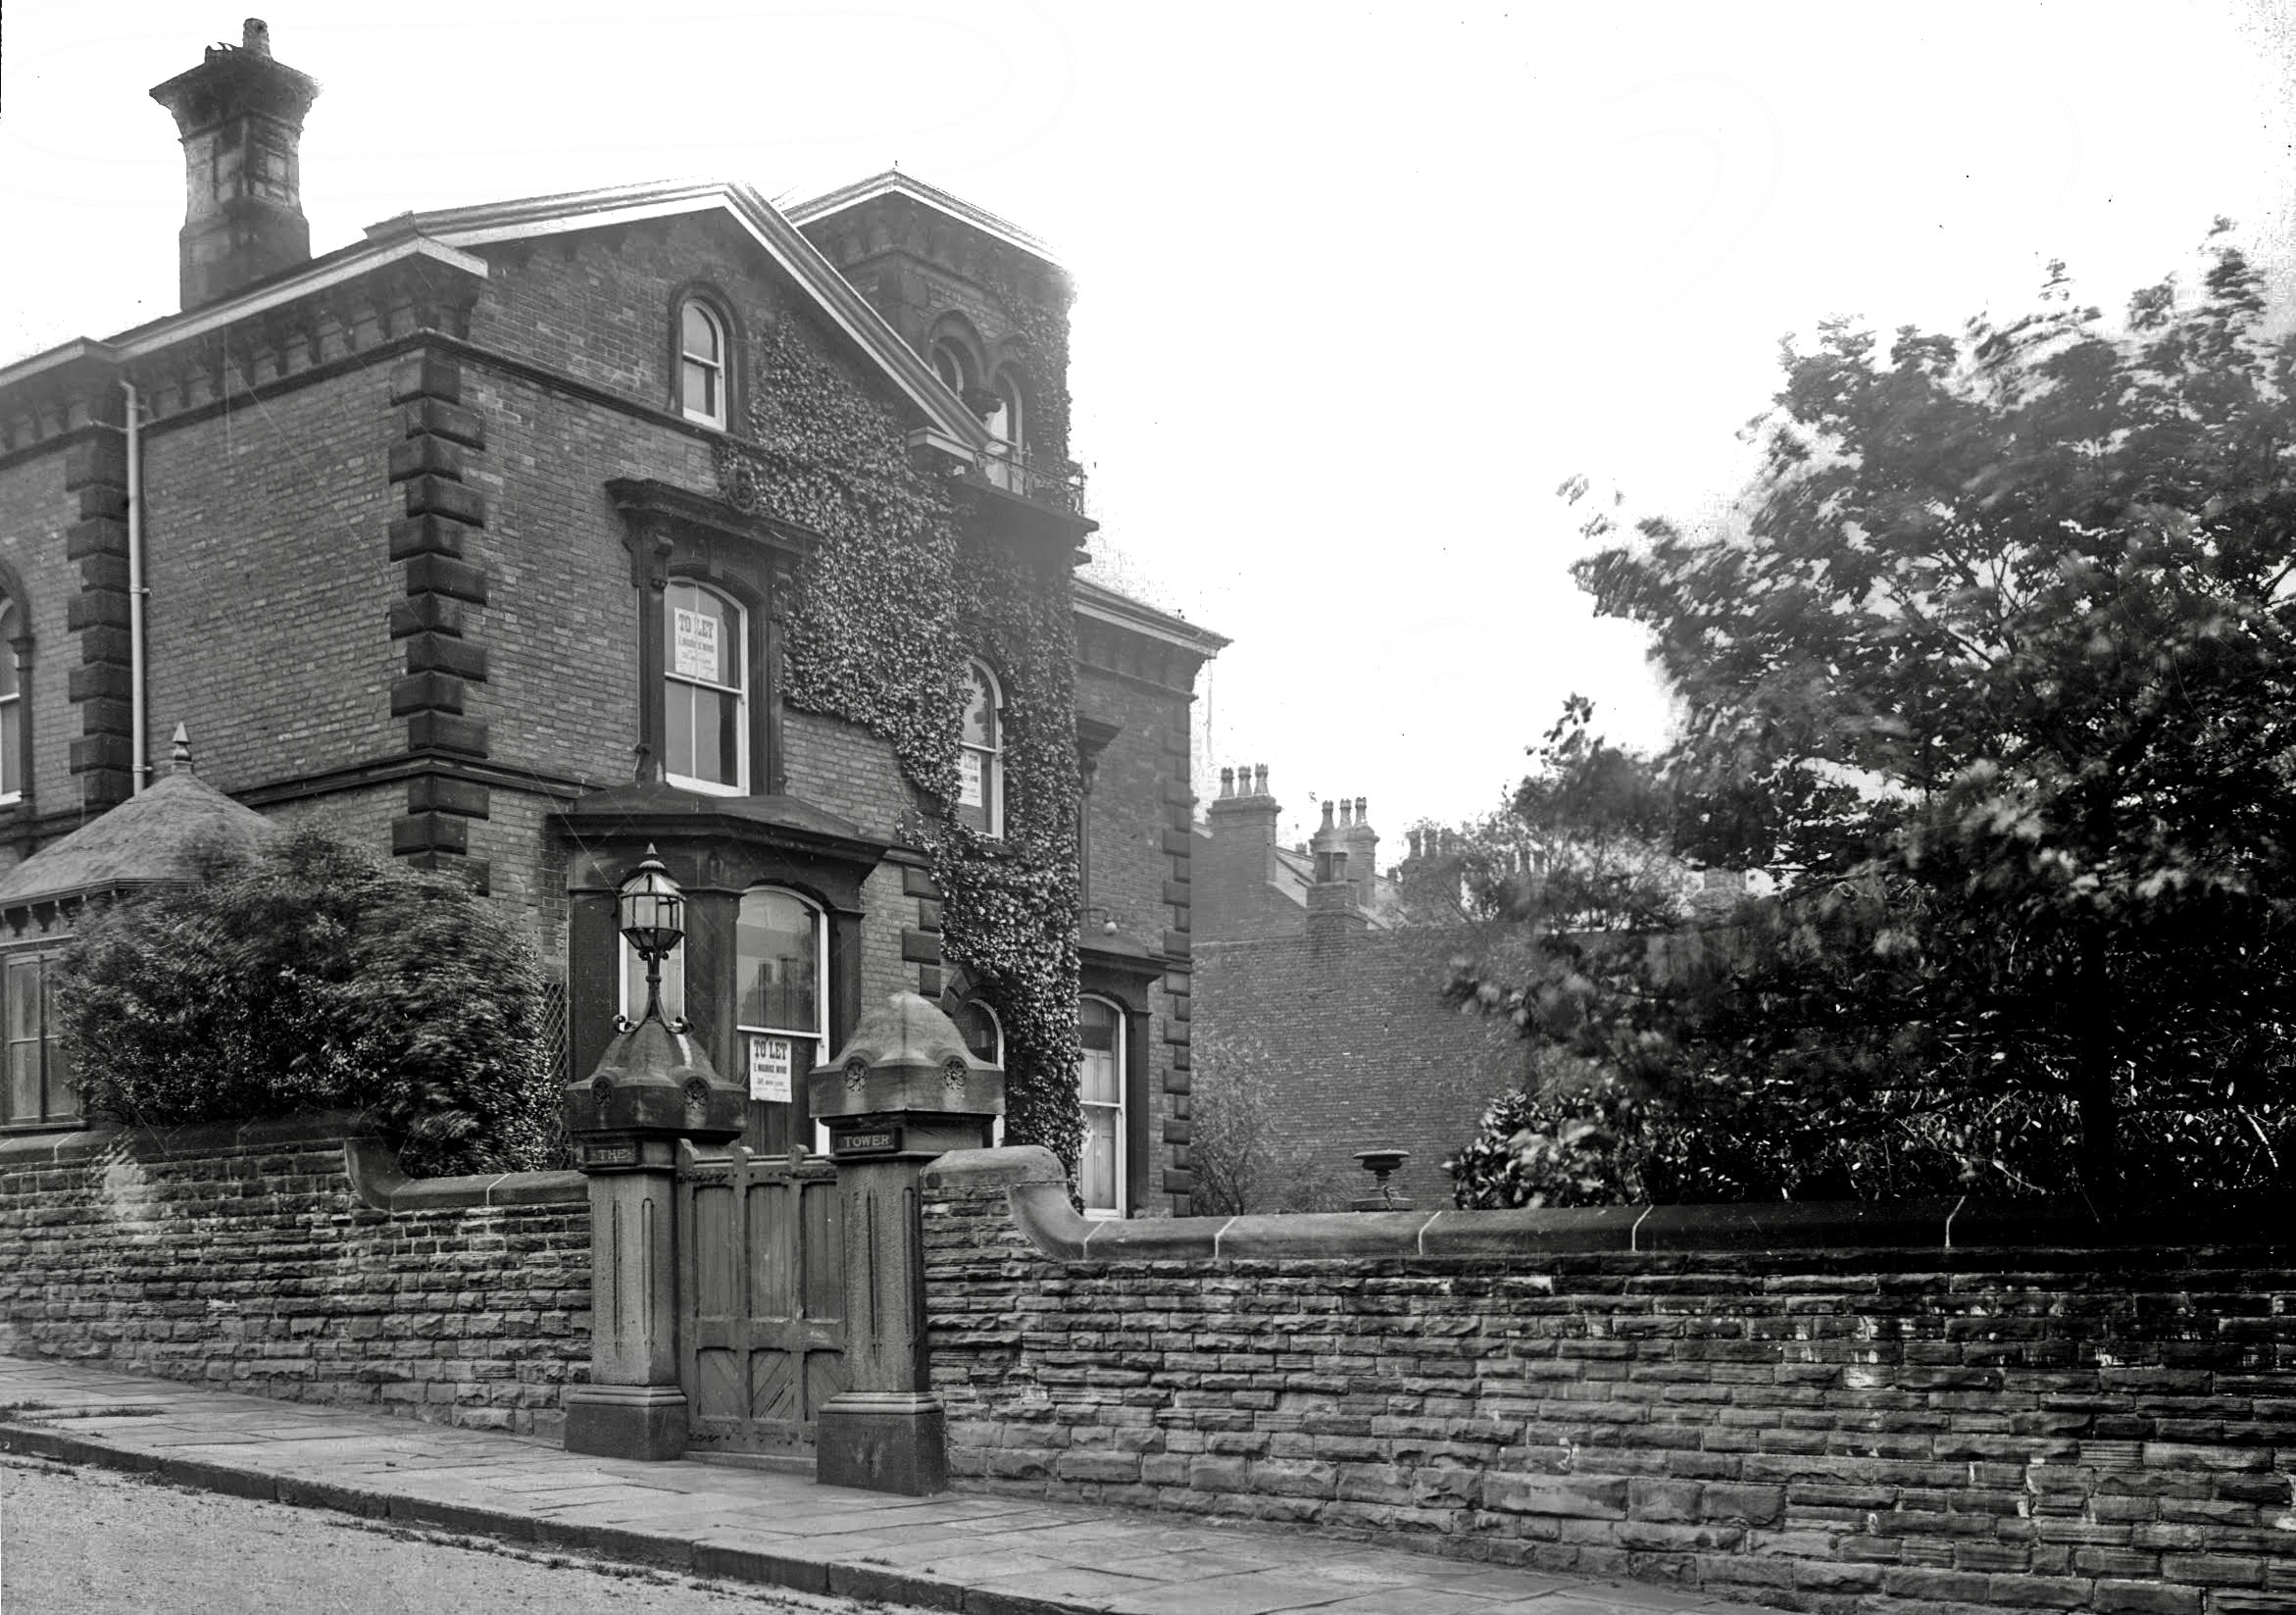 The Tower, Woodhouse Cliff, 1913